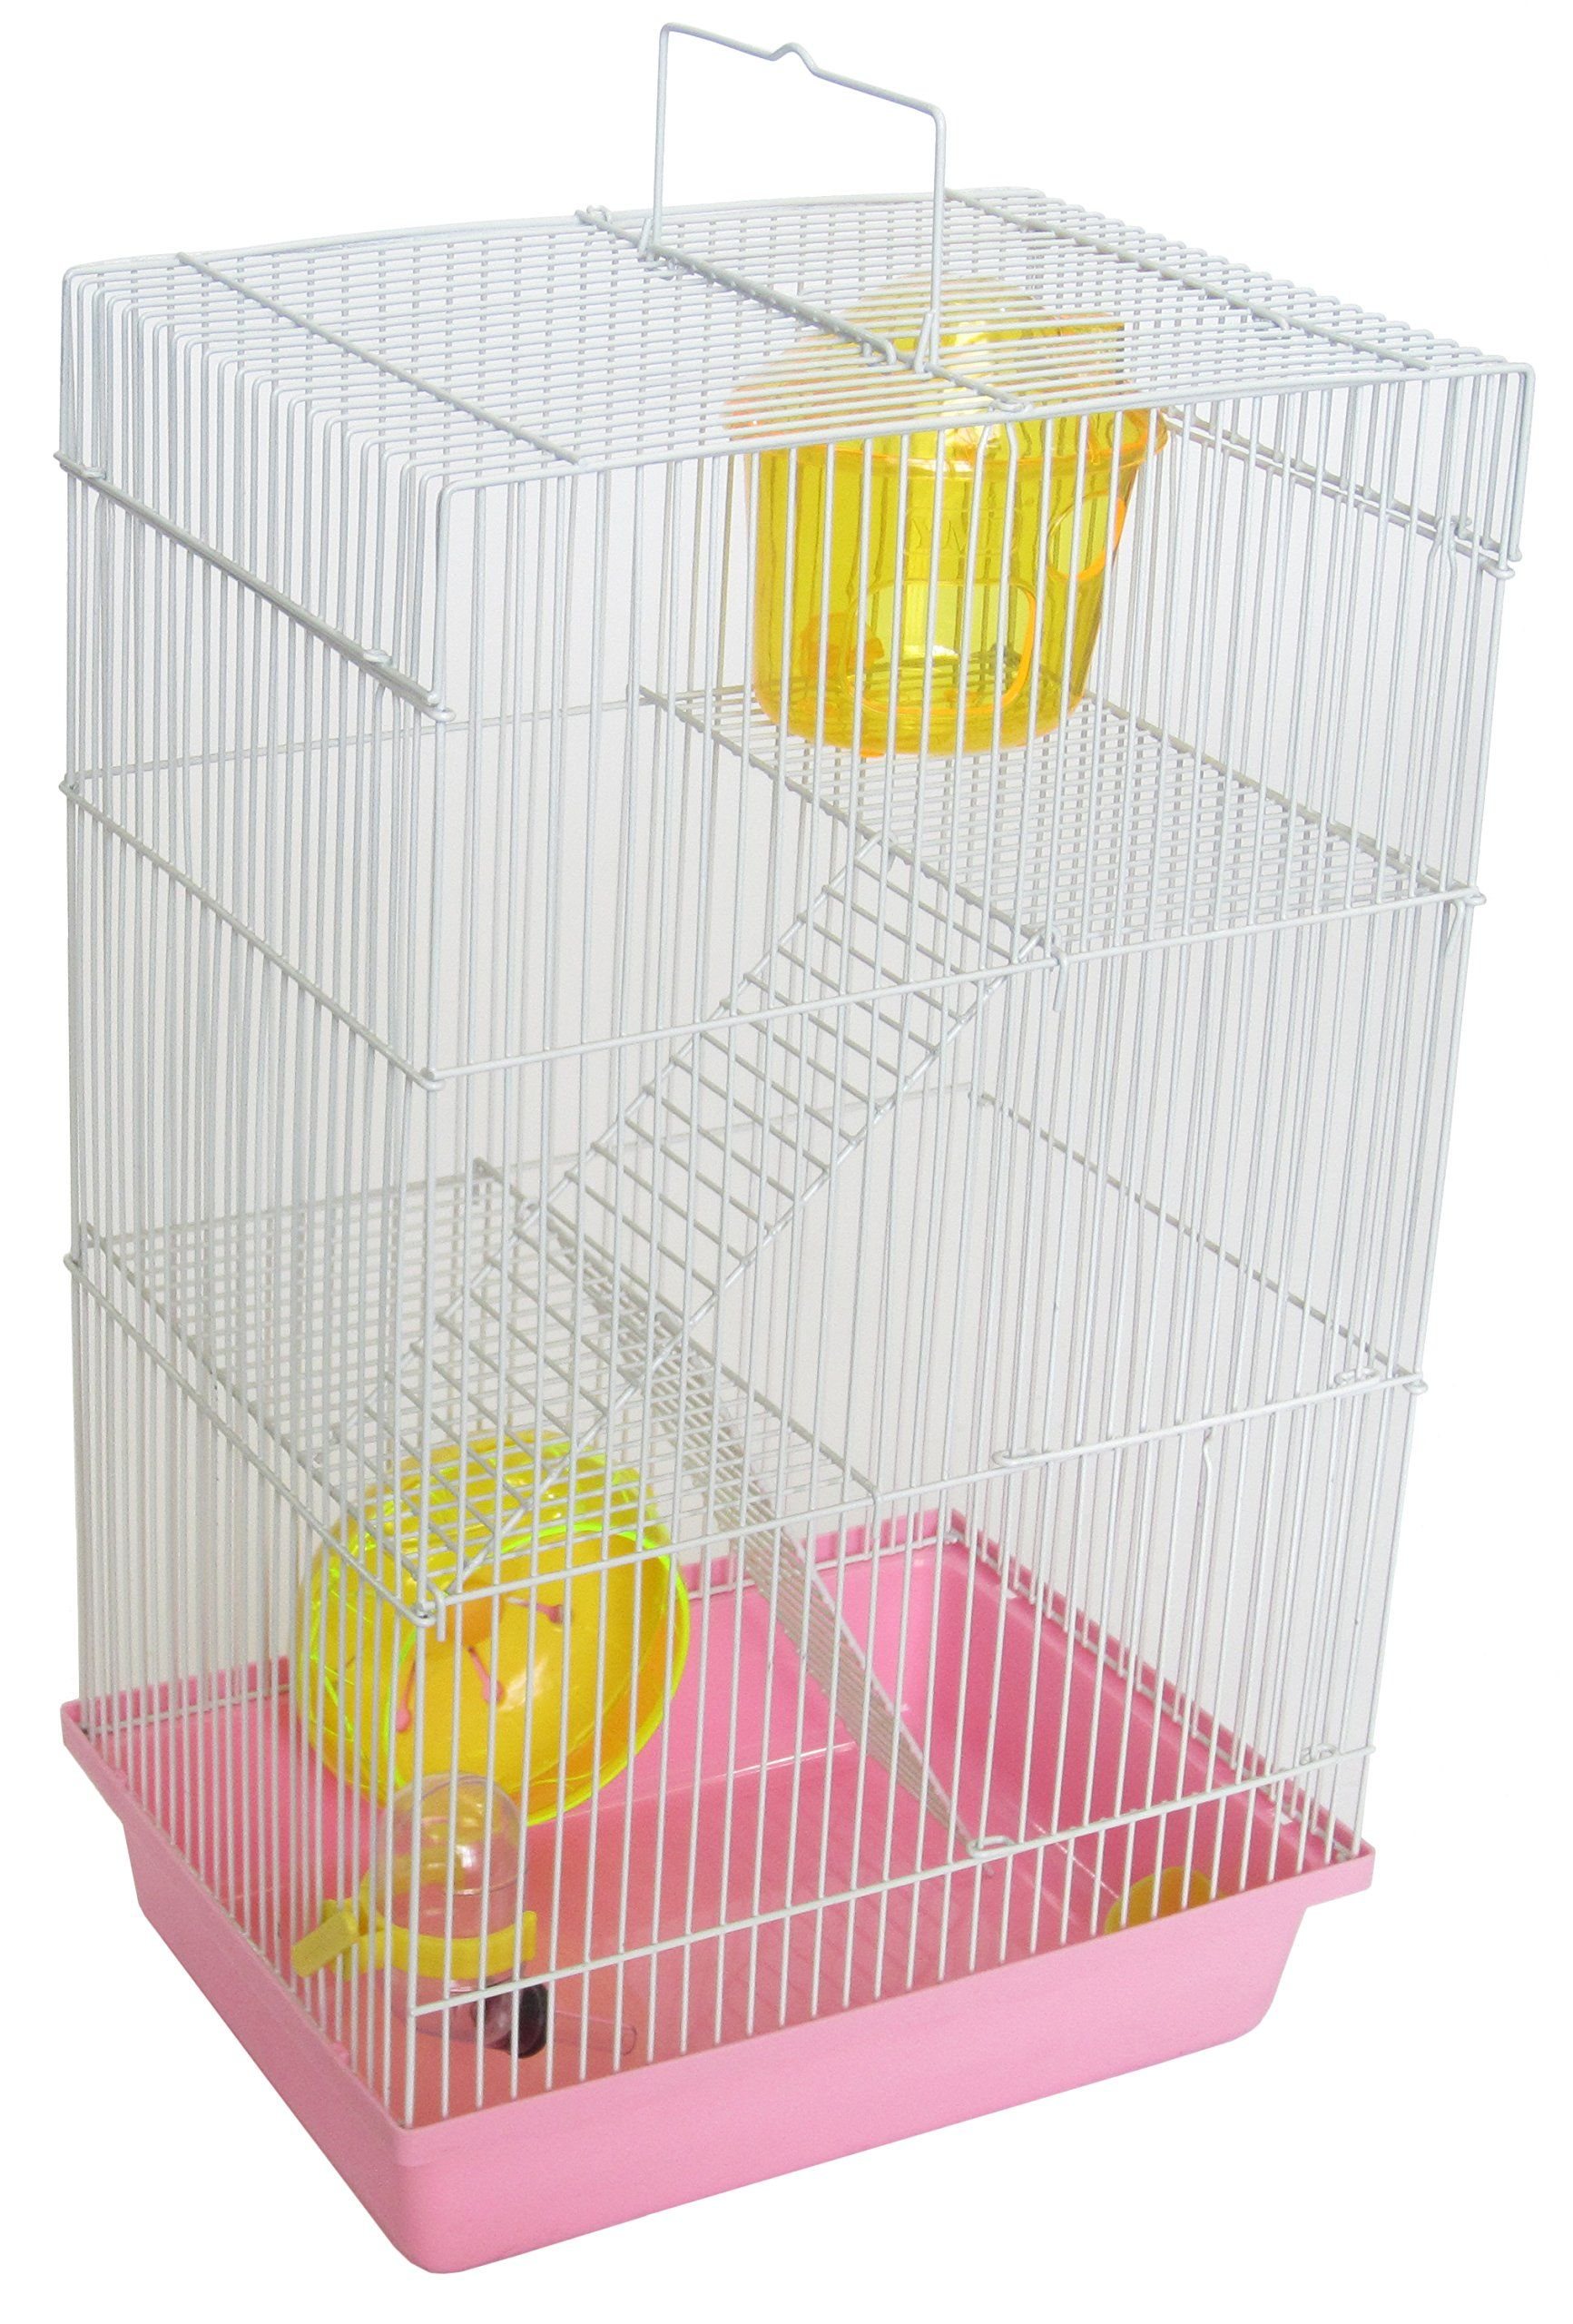 Pin On Small Animal Cage